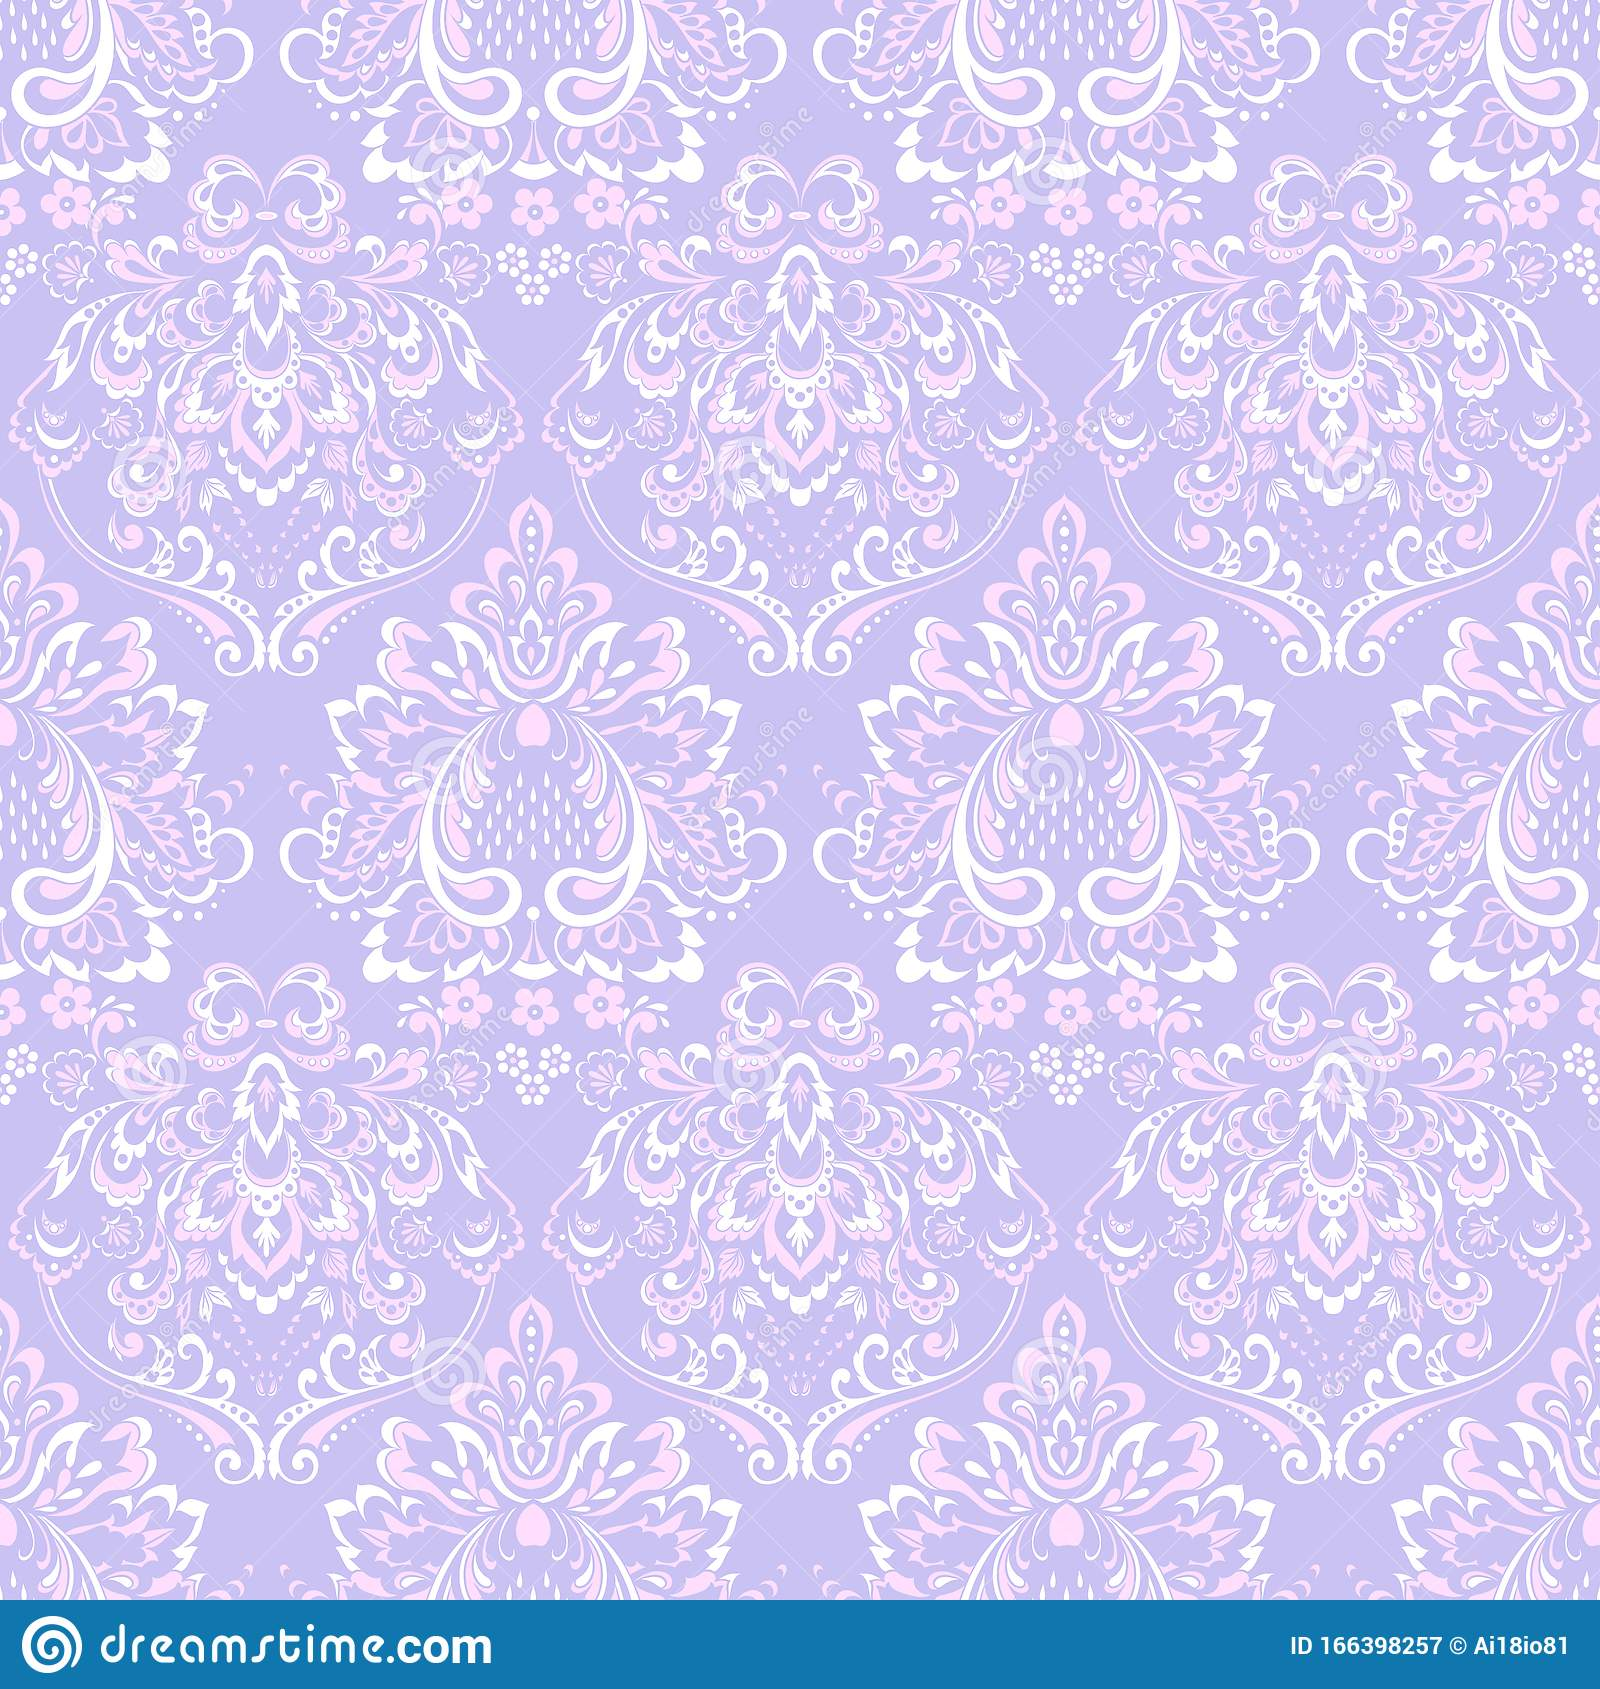 Vintage Floral Seamless Patten Classic Floral Wallpaper Seamless